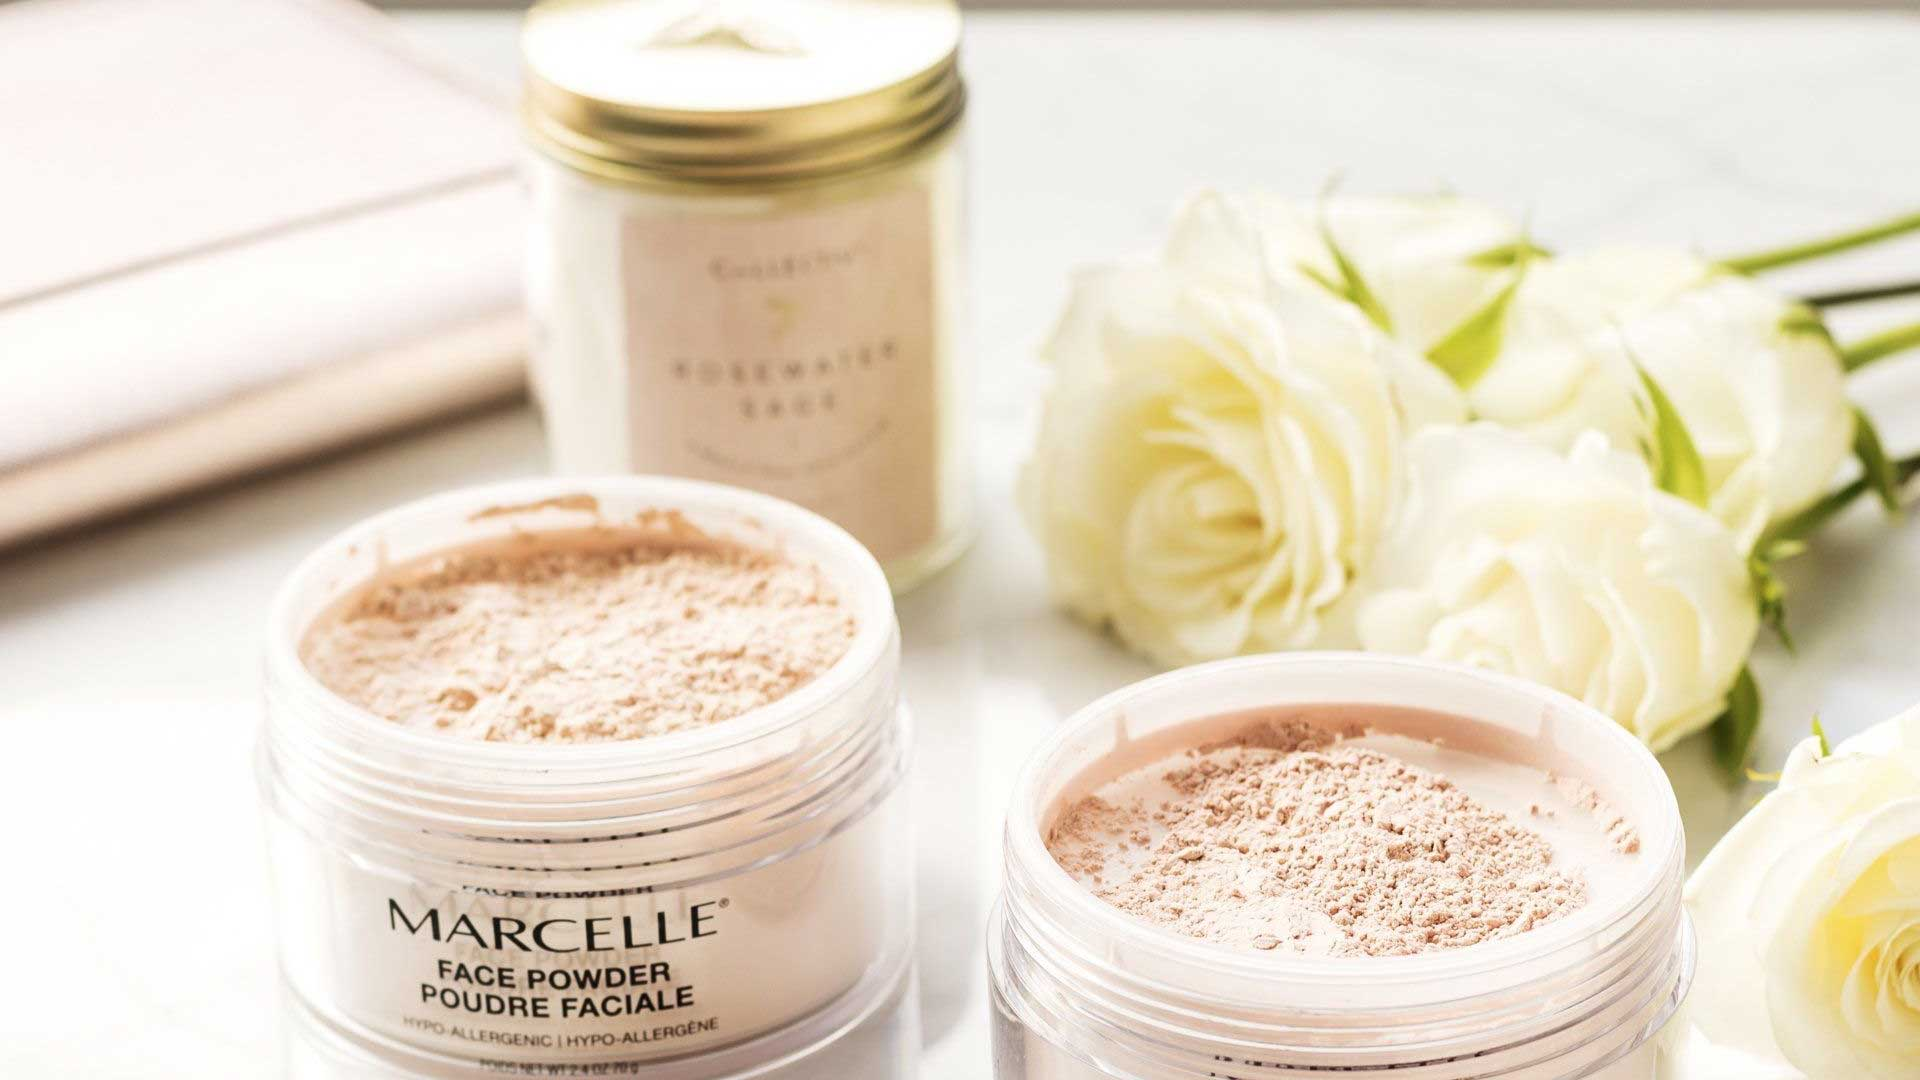 Marcelle powder foundation for dry skin